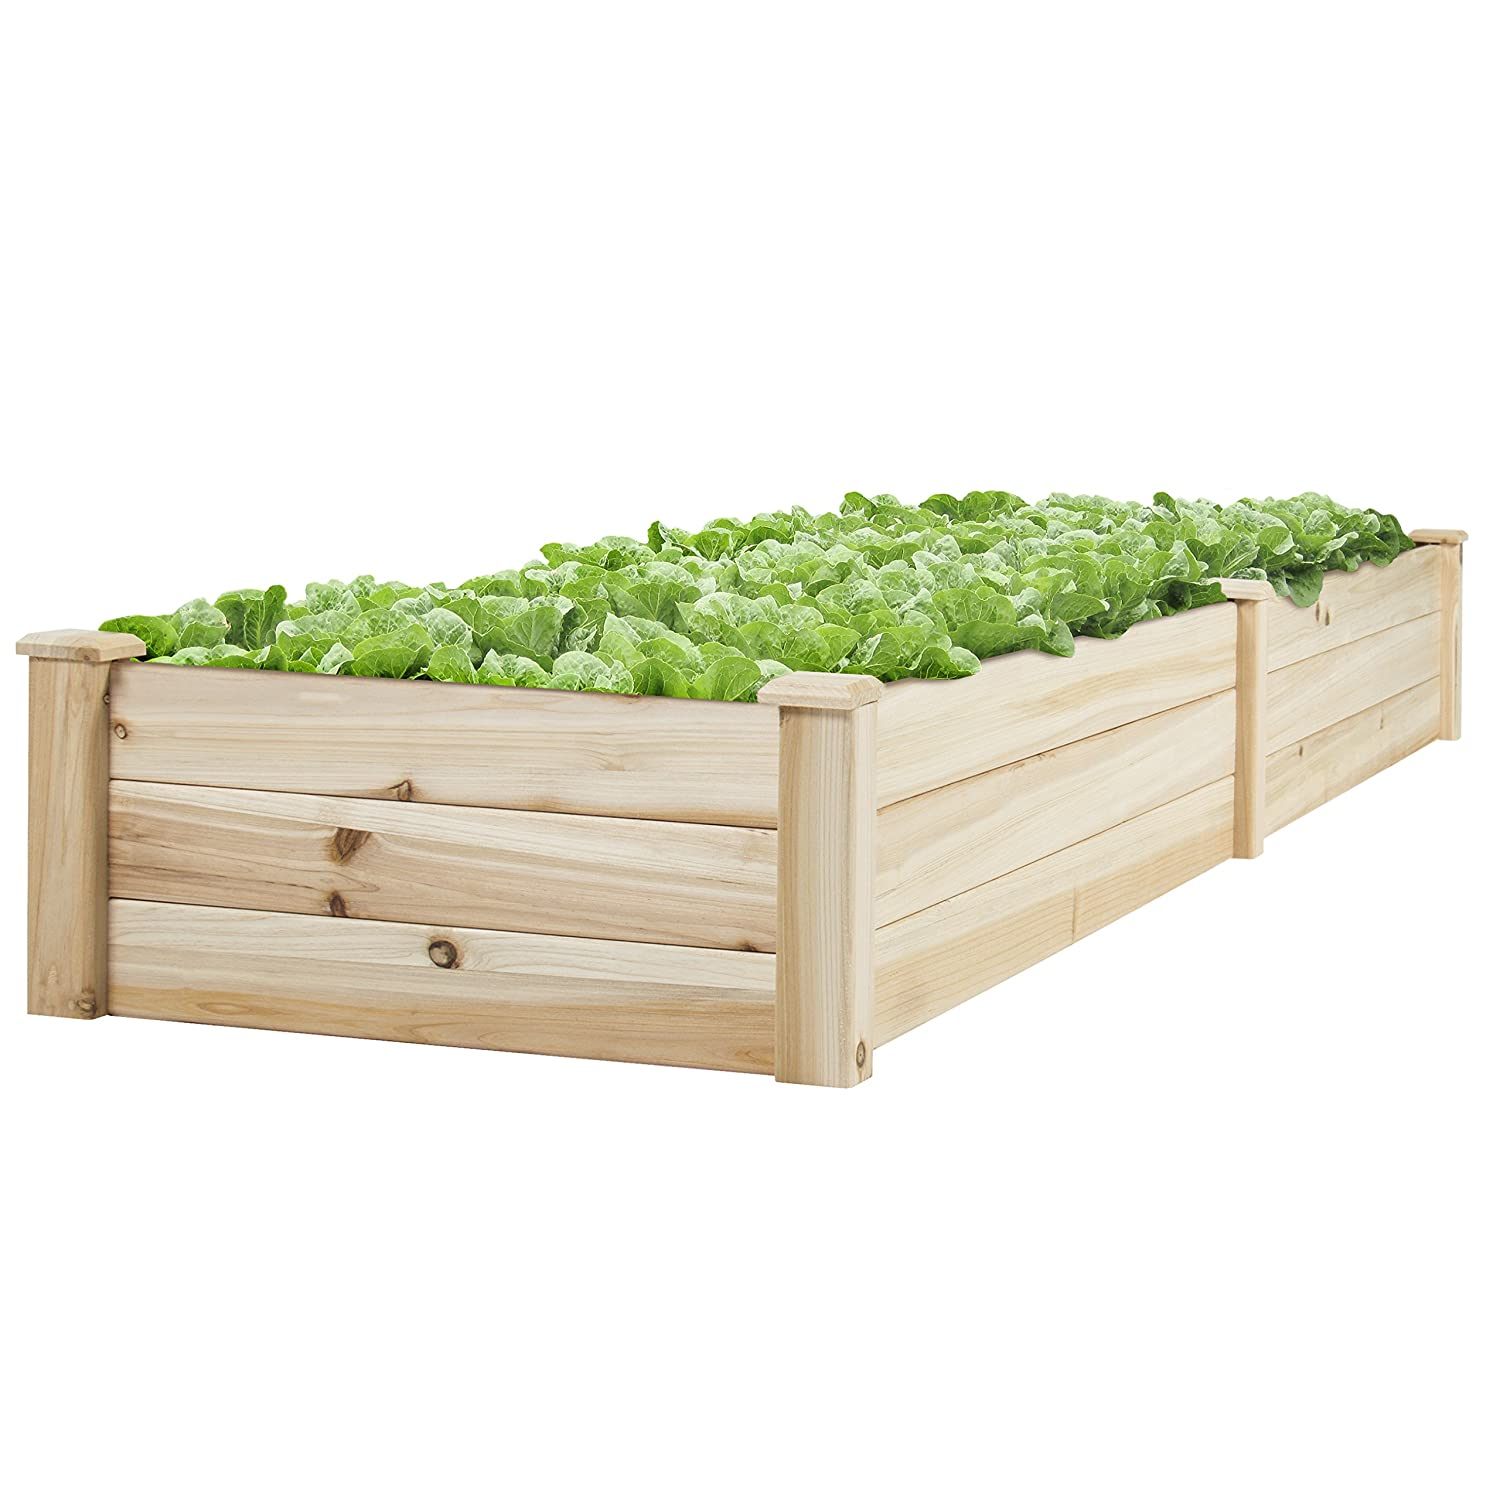 amazon com best choice products vegetable raised garden bed patio